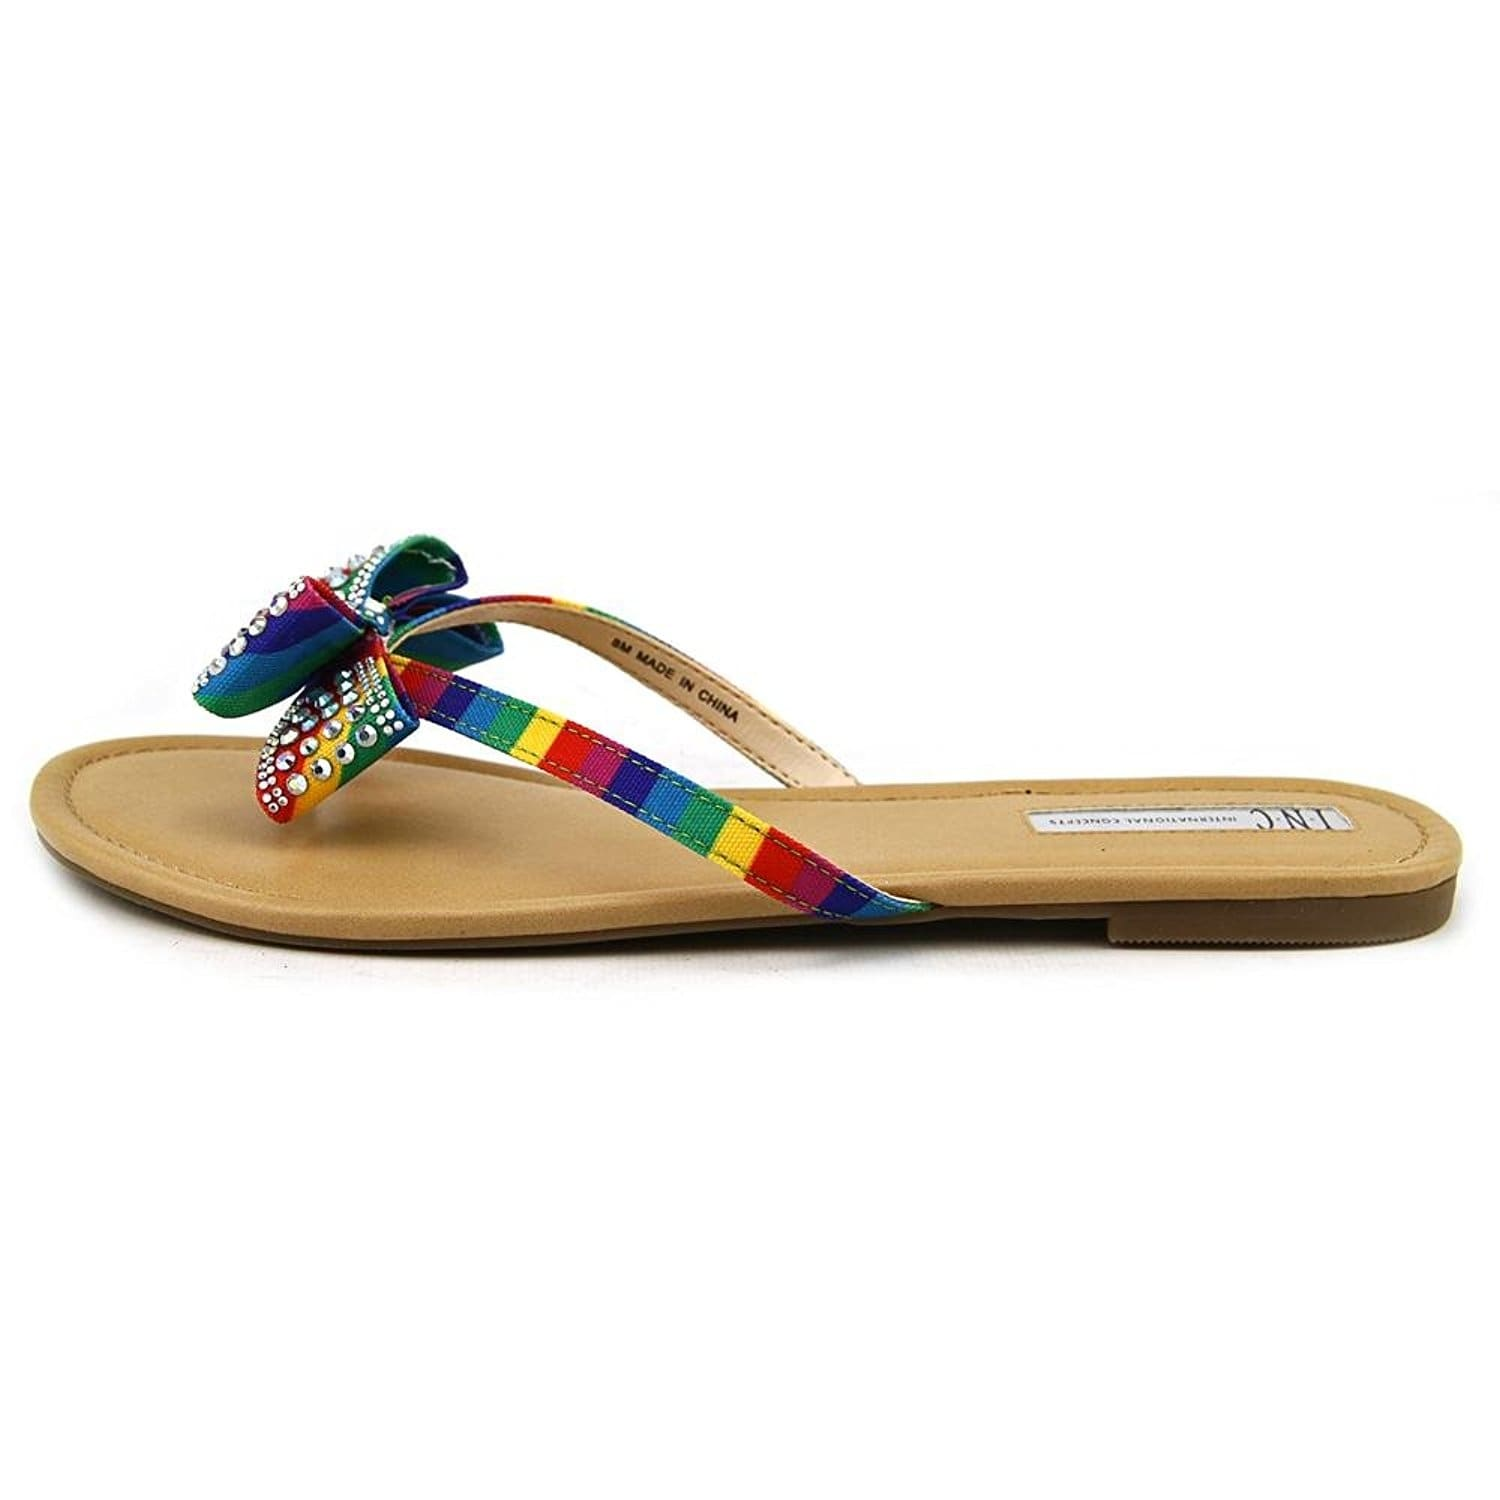 d8a33d807 Buy INC INTERNATIONAL CONCEPTS Women s Sandals Online at Overstock ...